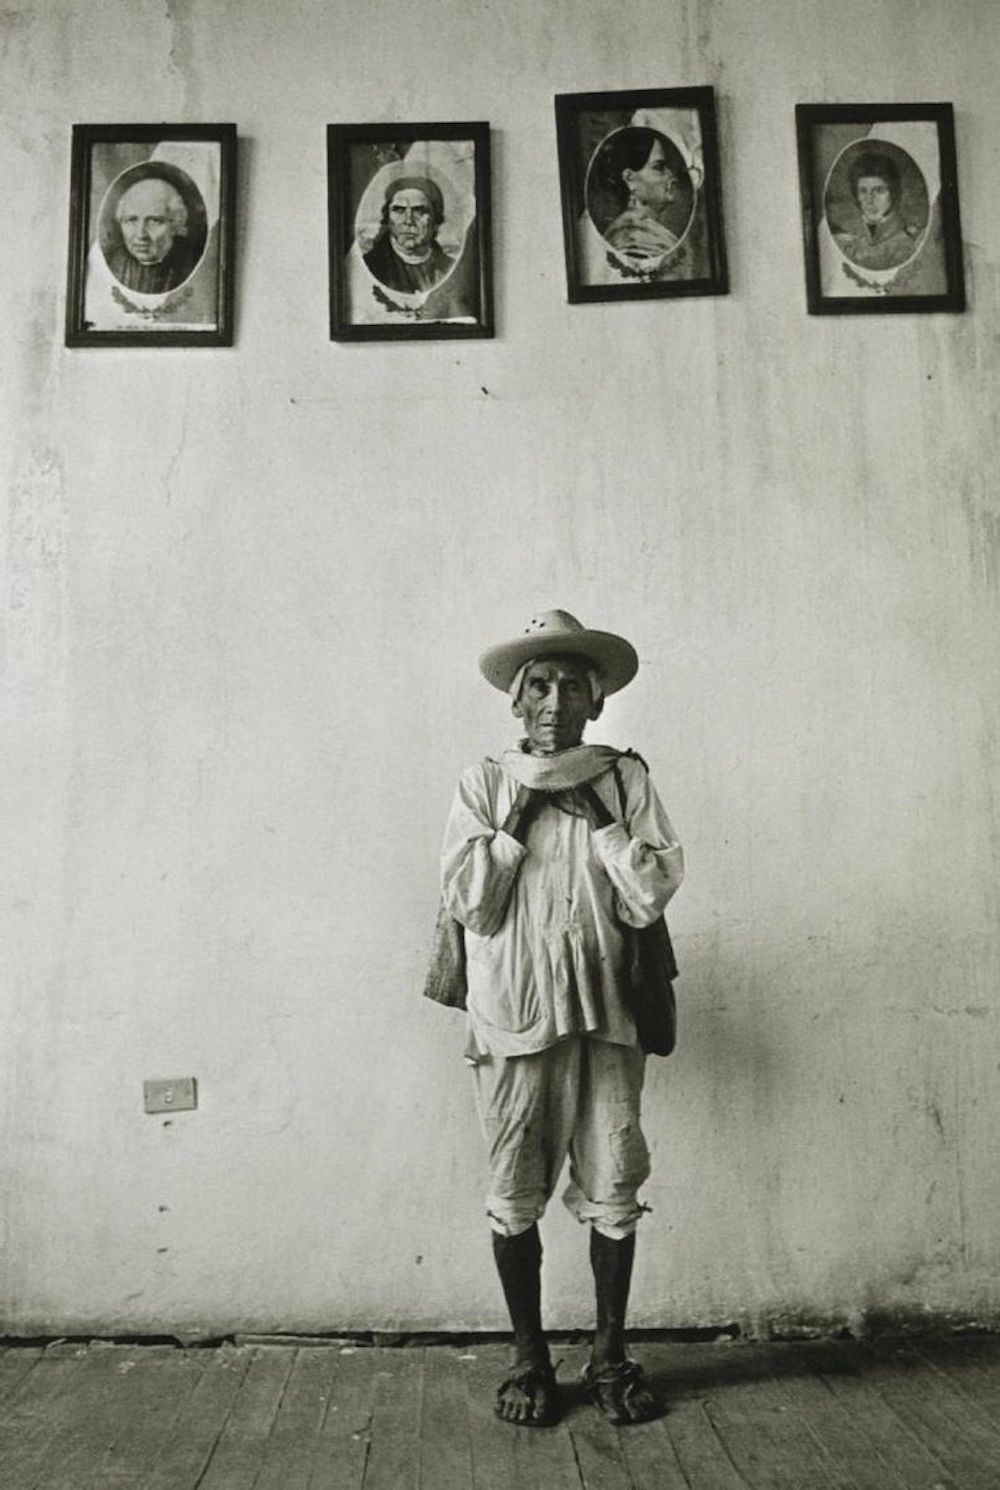 Graciela Iturbide   Héroes de la Patria,  Cuetzalan, Puebla, México, 1993 14 x 11 inch Silver Gelatin Print Signed by the artist in ink on recto From the collection of the artist Illustrated in:  Images of the Spirit , Aperture, 1996, cover image and page 10 GCP6993 $4,000